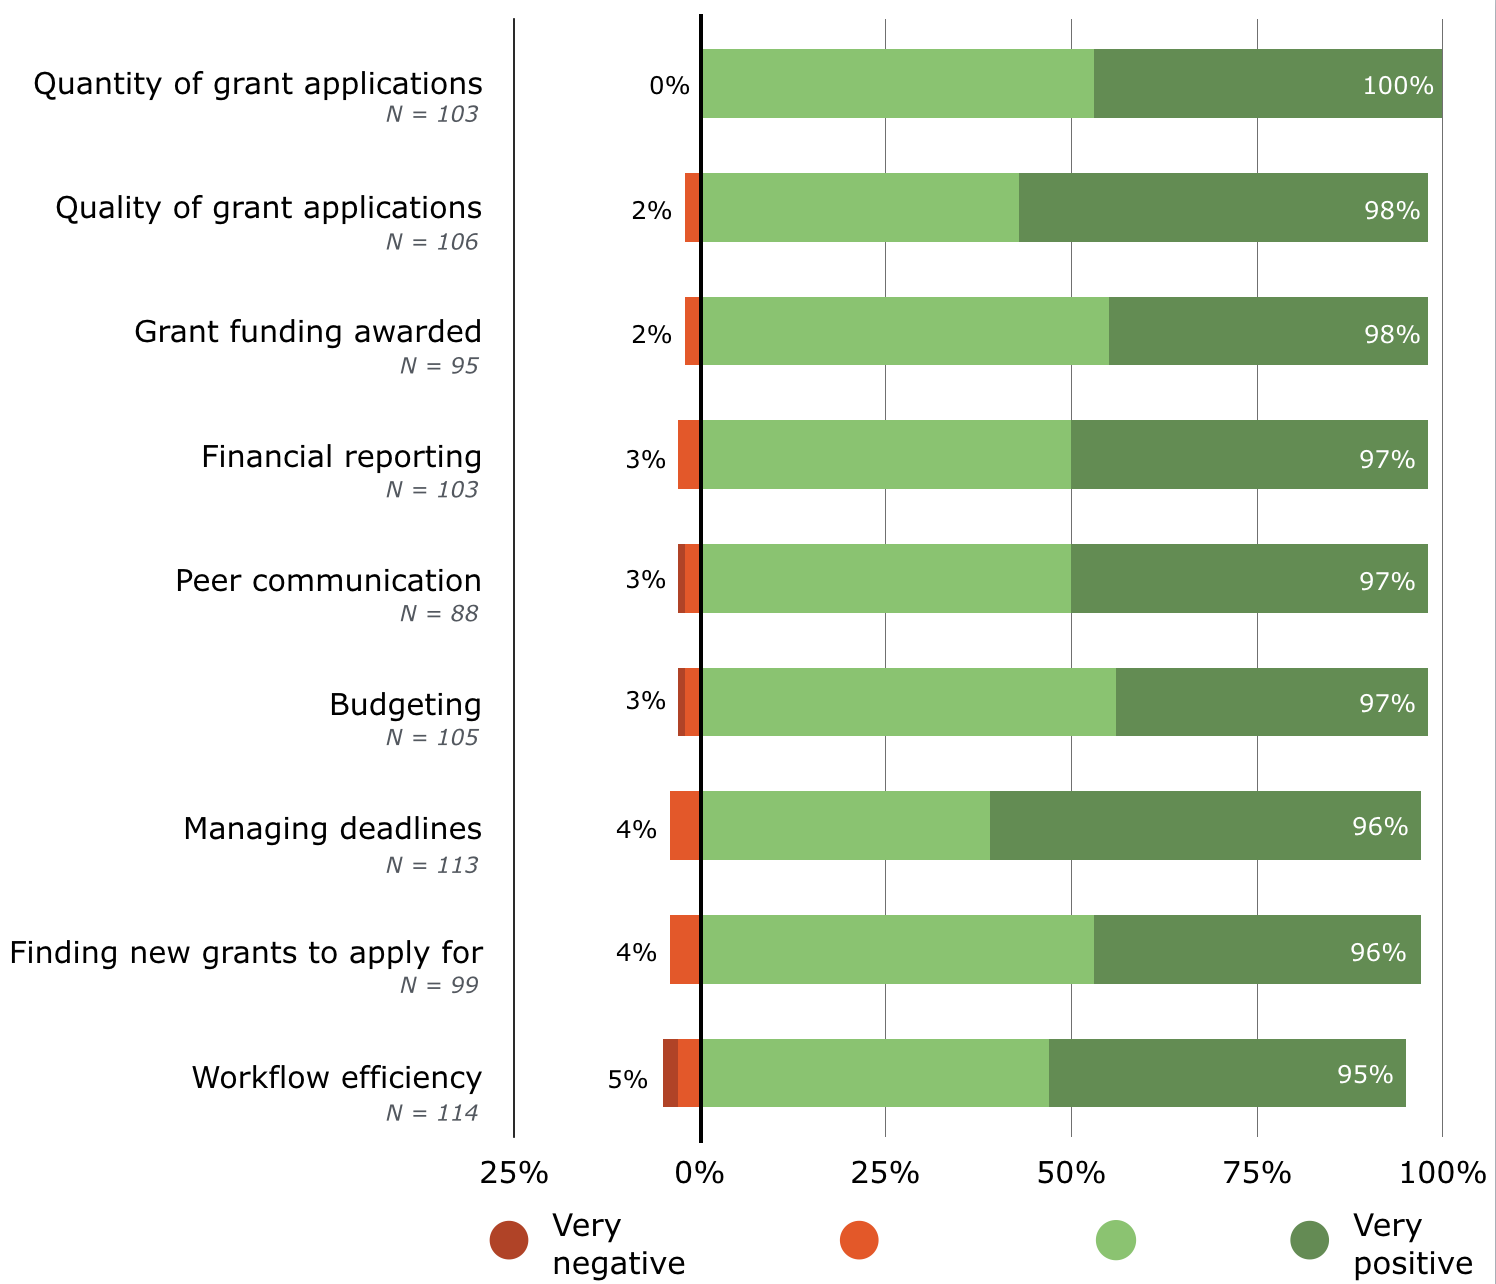 Impact of Software on Grant Management Activities